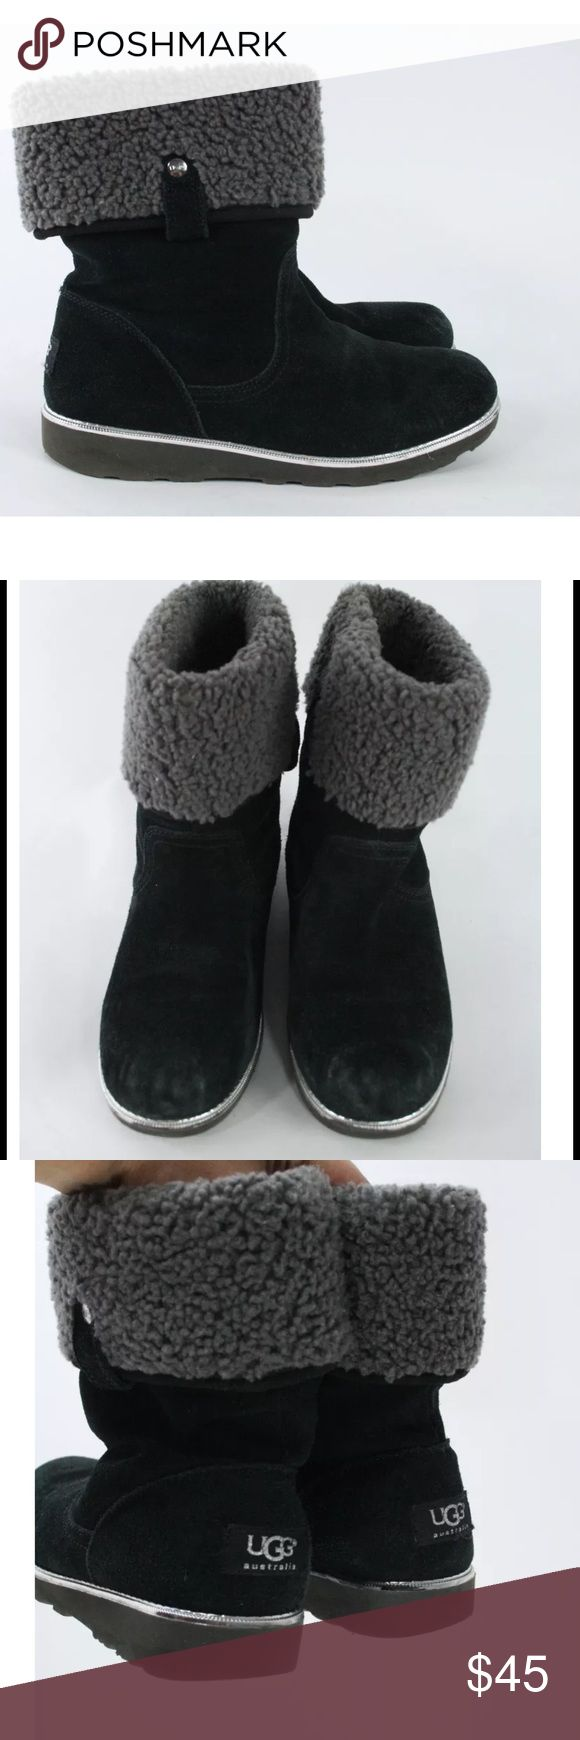 Girls' Suede Shearling Callie PullOn Boots Condition: Wear at toes and heels, minor wear to soles.  Details : From Website: Pull-on style Can be worn up or folded over to reveal sheepskin top shaft lining, UGGpure™ all other lining Rubberized 1-inch wedge sole provides traction and a little bit of extra height For cold weather and rain Real lamb fur; origin: Australia; dyed Upper: suede; insole: 10mm UGGpure™; outsole: rubberized ethylene vinyl acetate UGG Shoes Boots